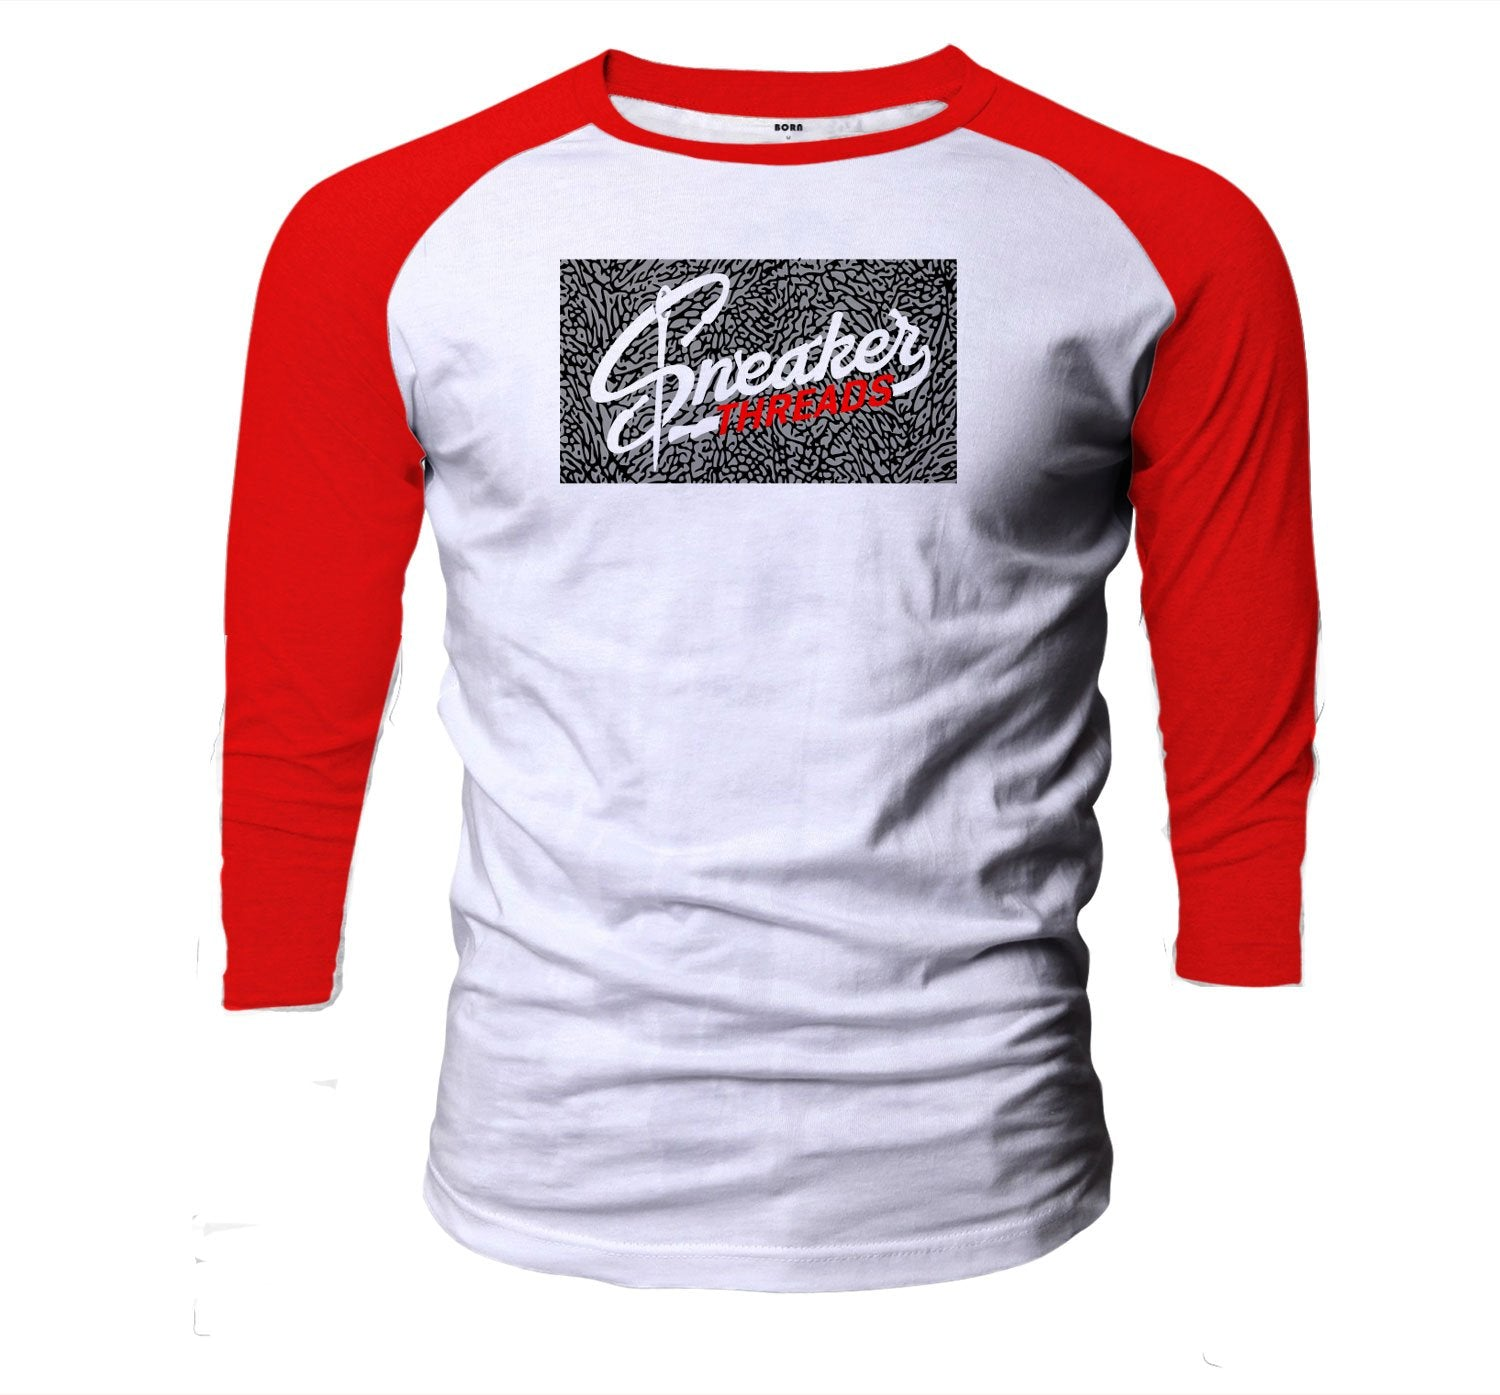 Unite Red Cement Sneaker collection designed to to match raglan shirts